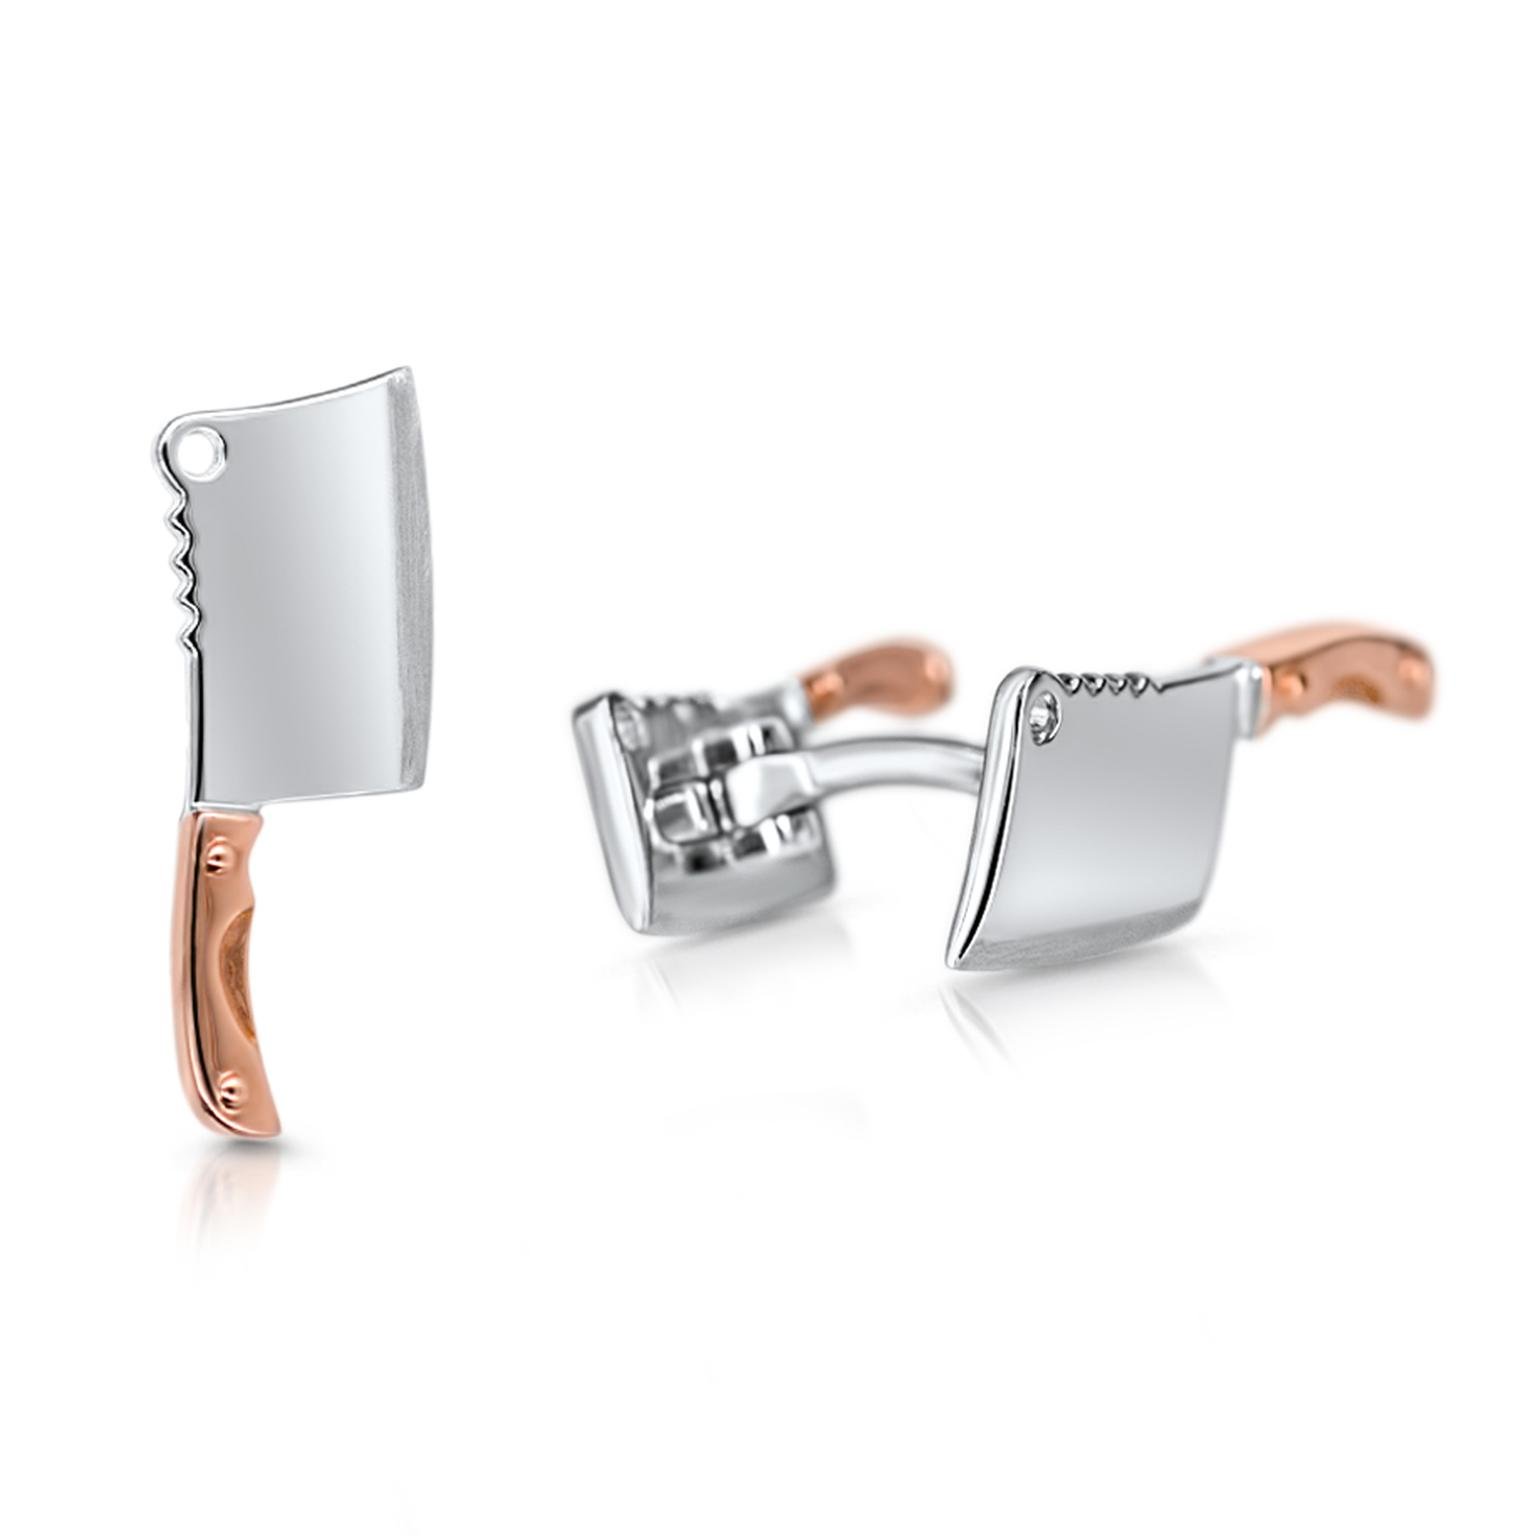 Pinner & Co Cleaver cufflinks